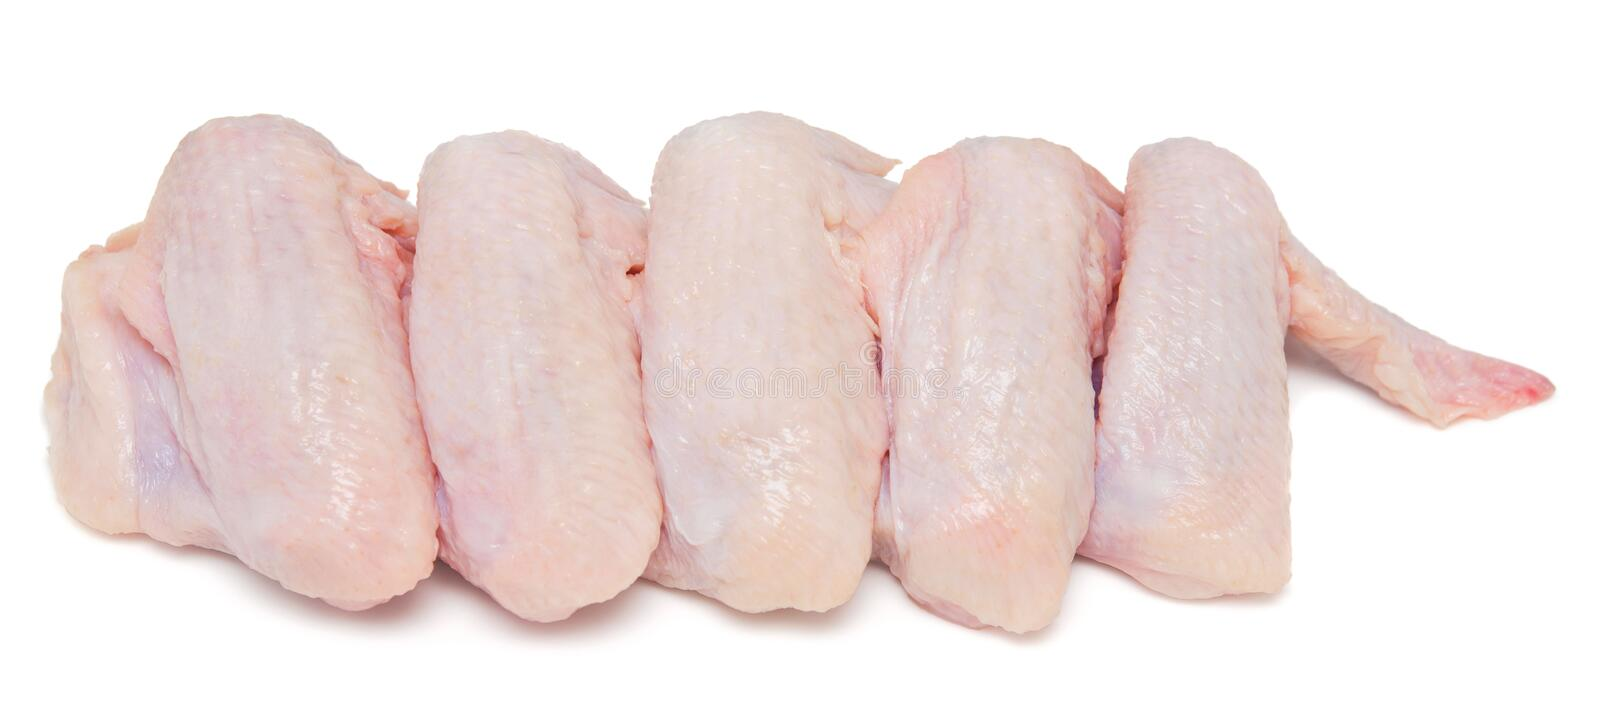 Chicken wings royalty free stock photos